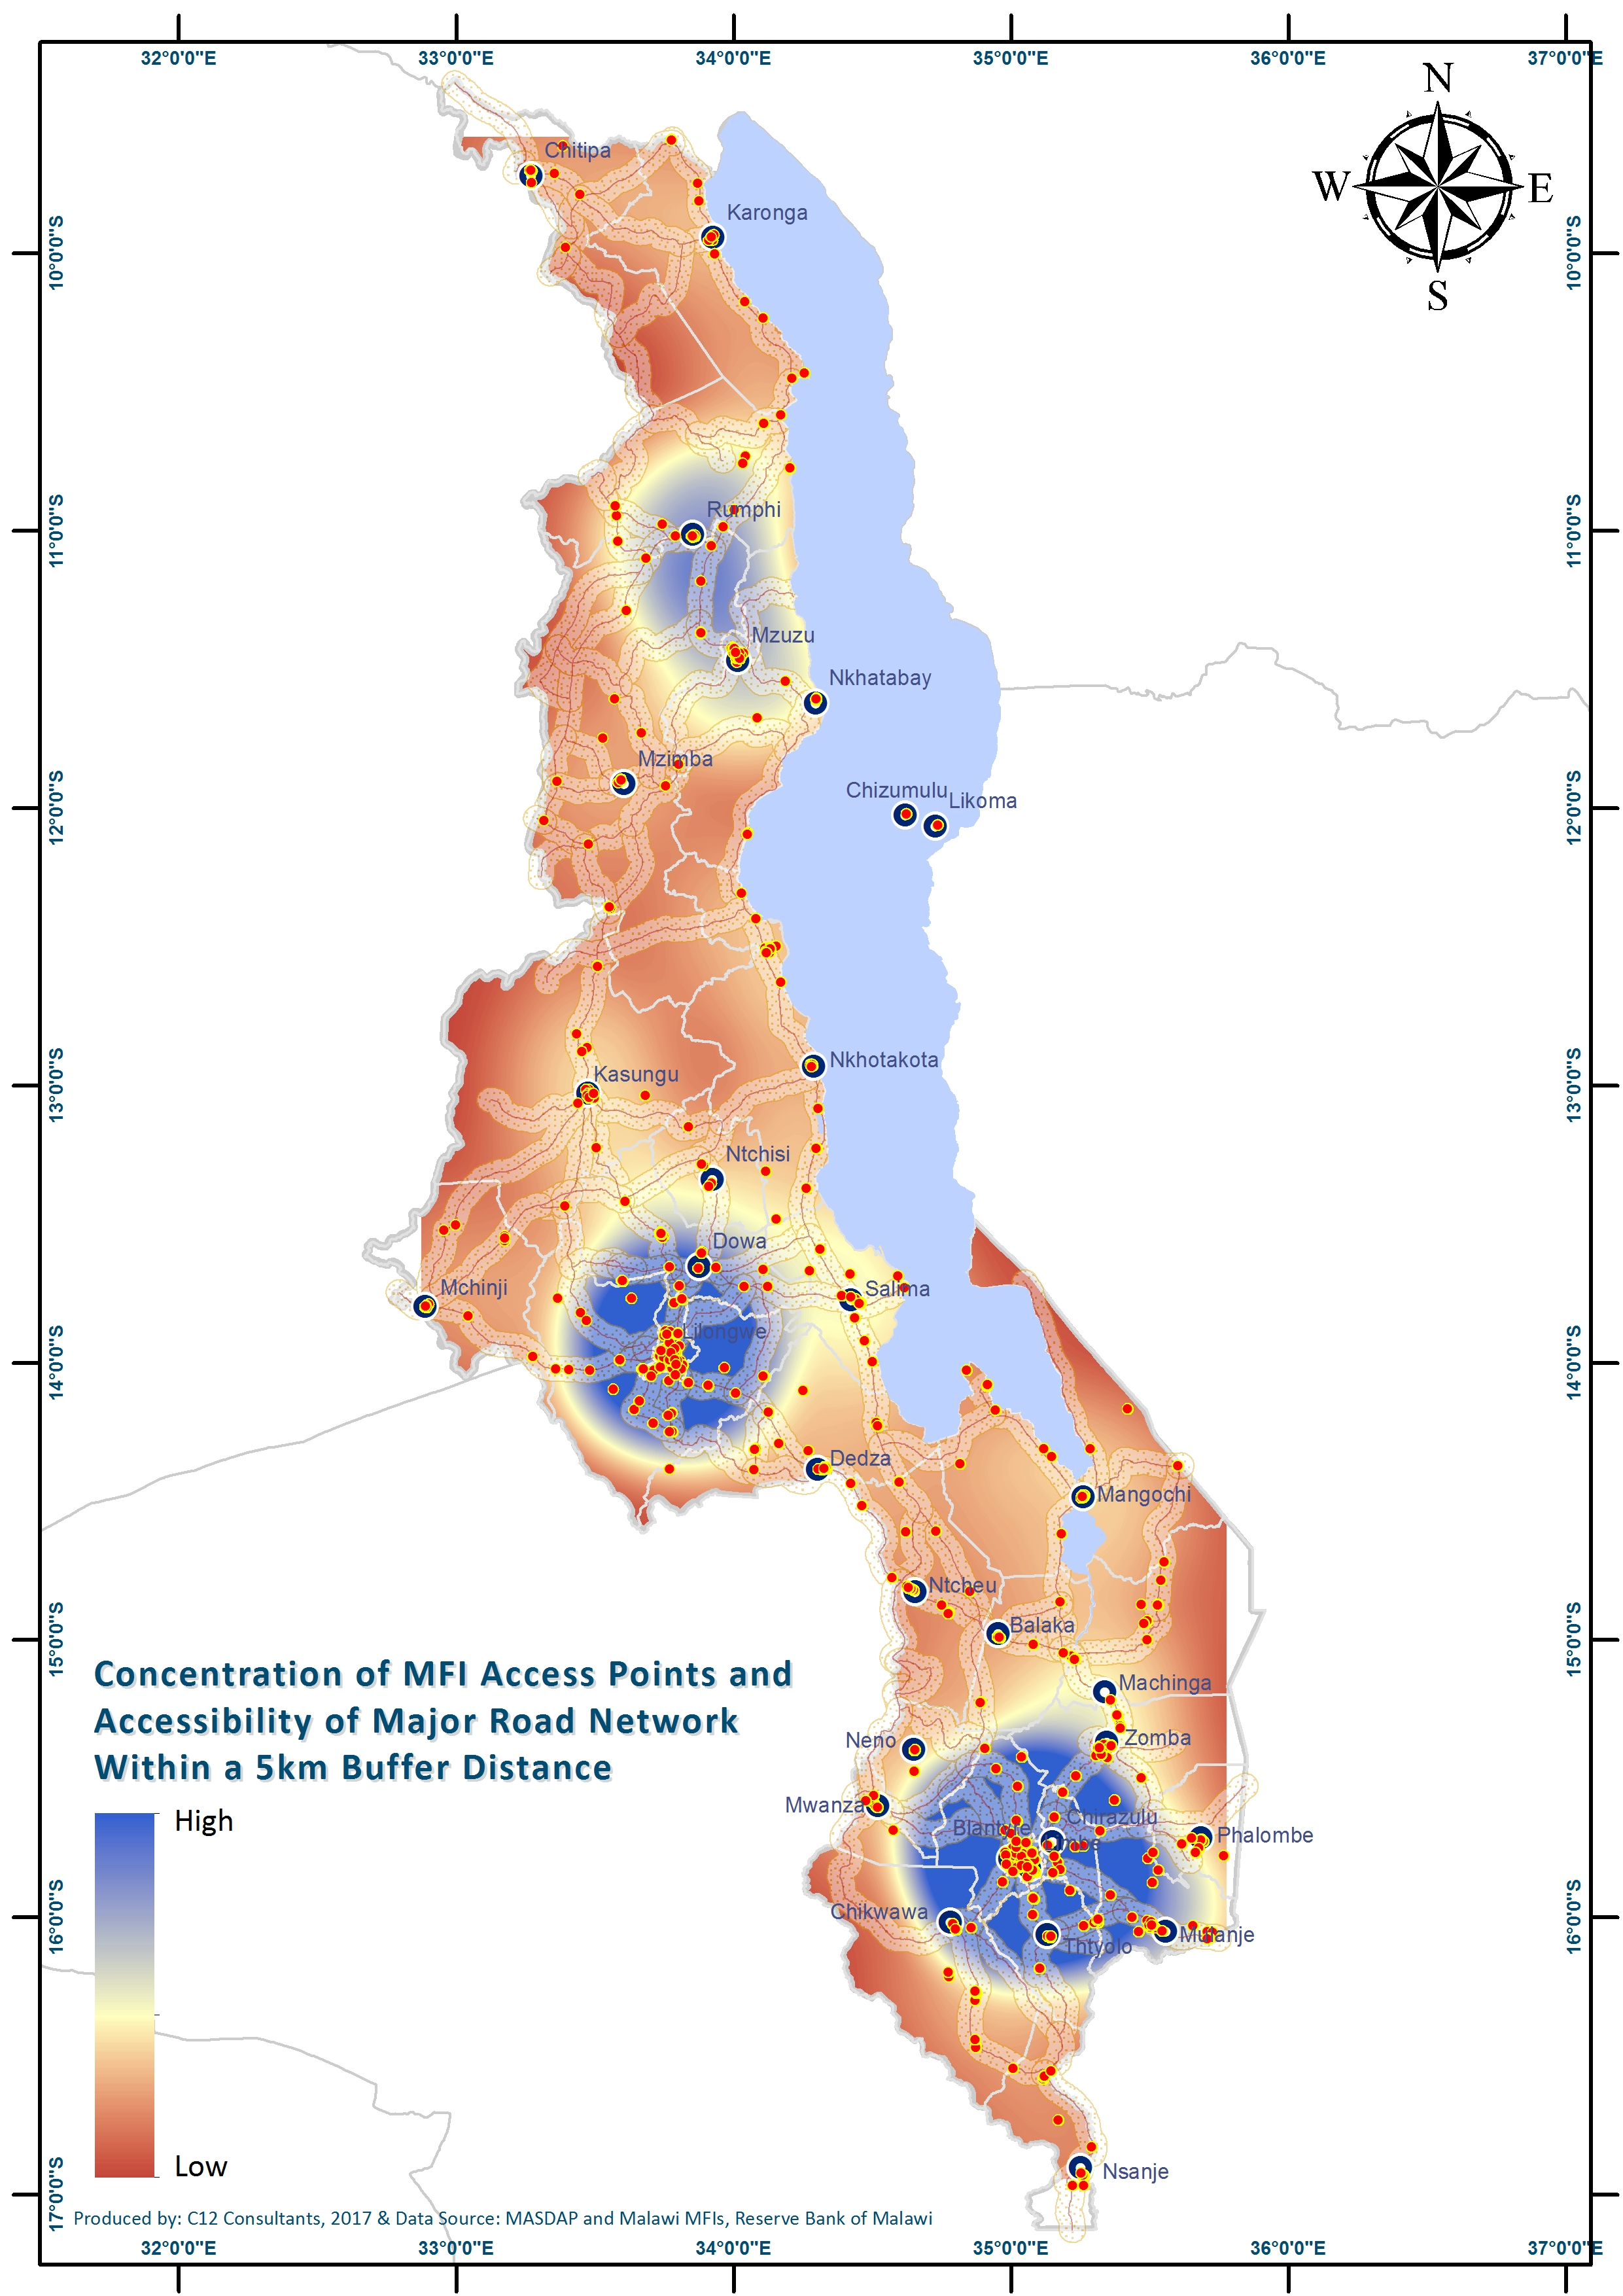 Map 3_Concentration of MFI Access Points and Accessibility of Major Road Network Within a 5km Buffer Distance.jpg